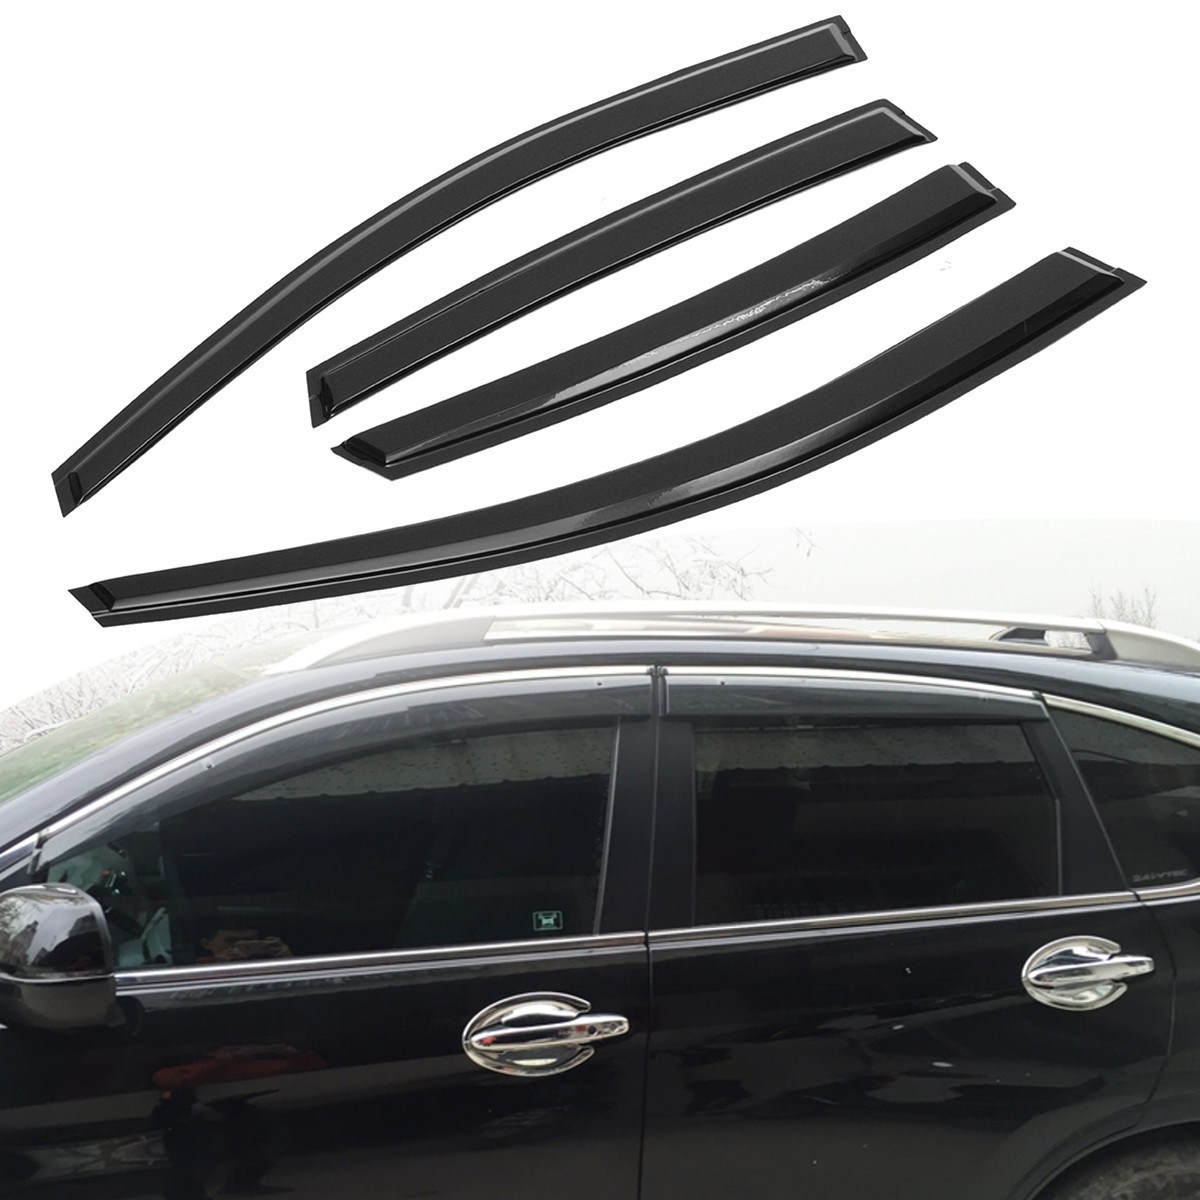 Car window visor rain sun guard vent shade set for honda crv 07 11